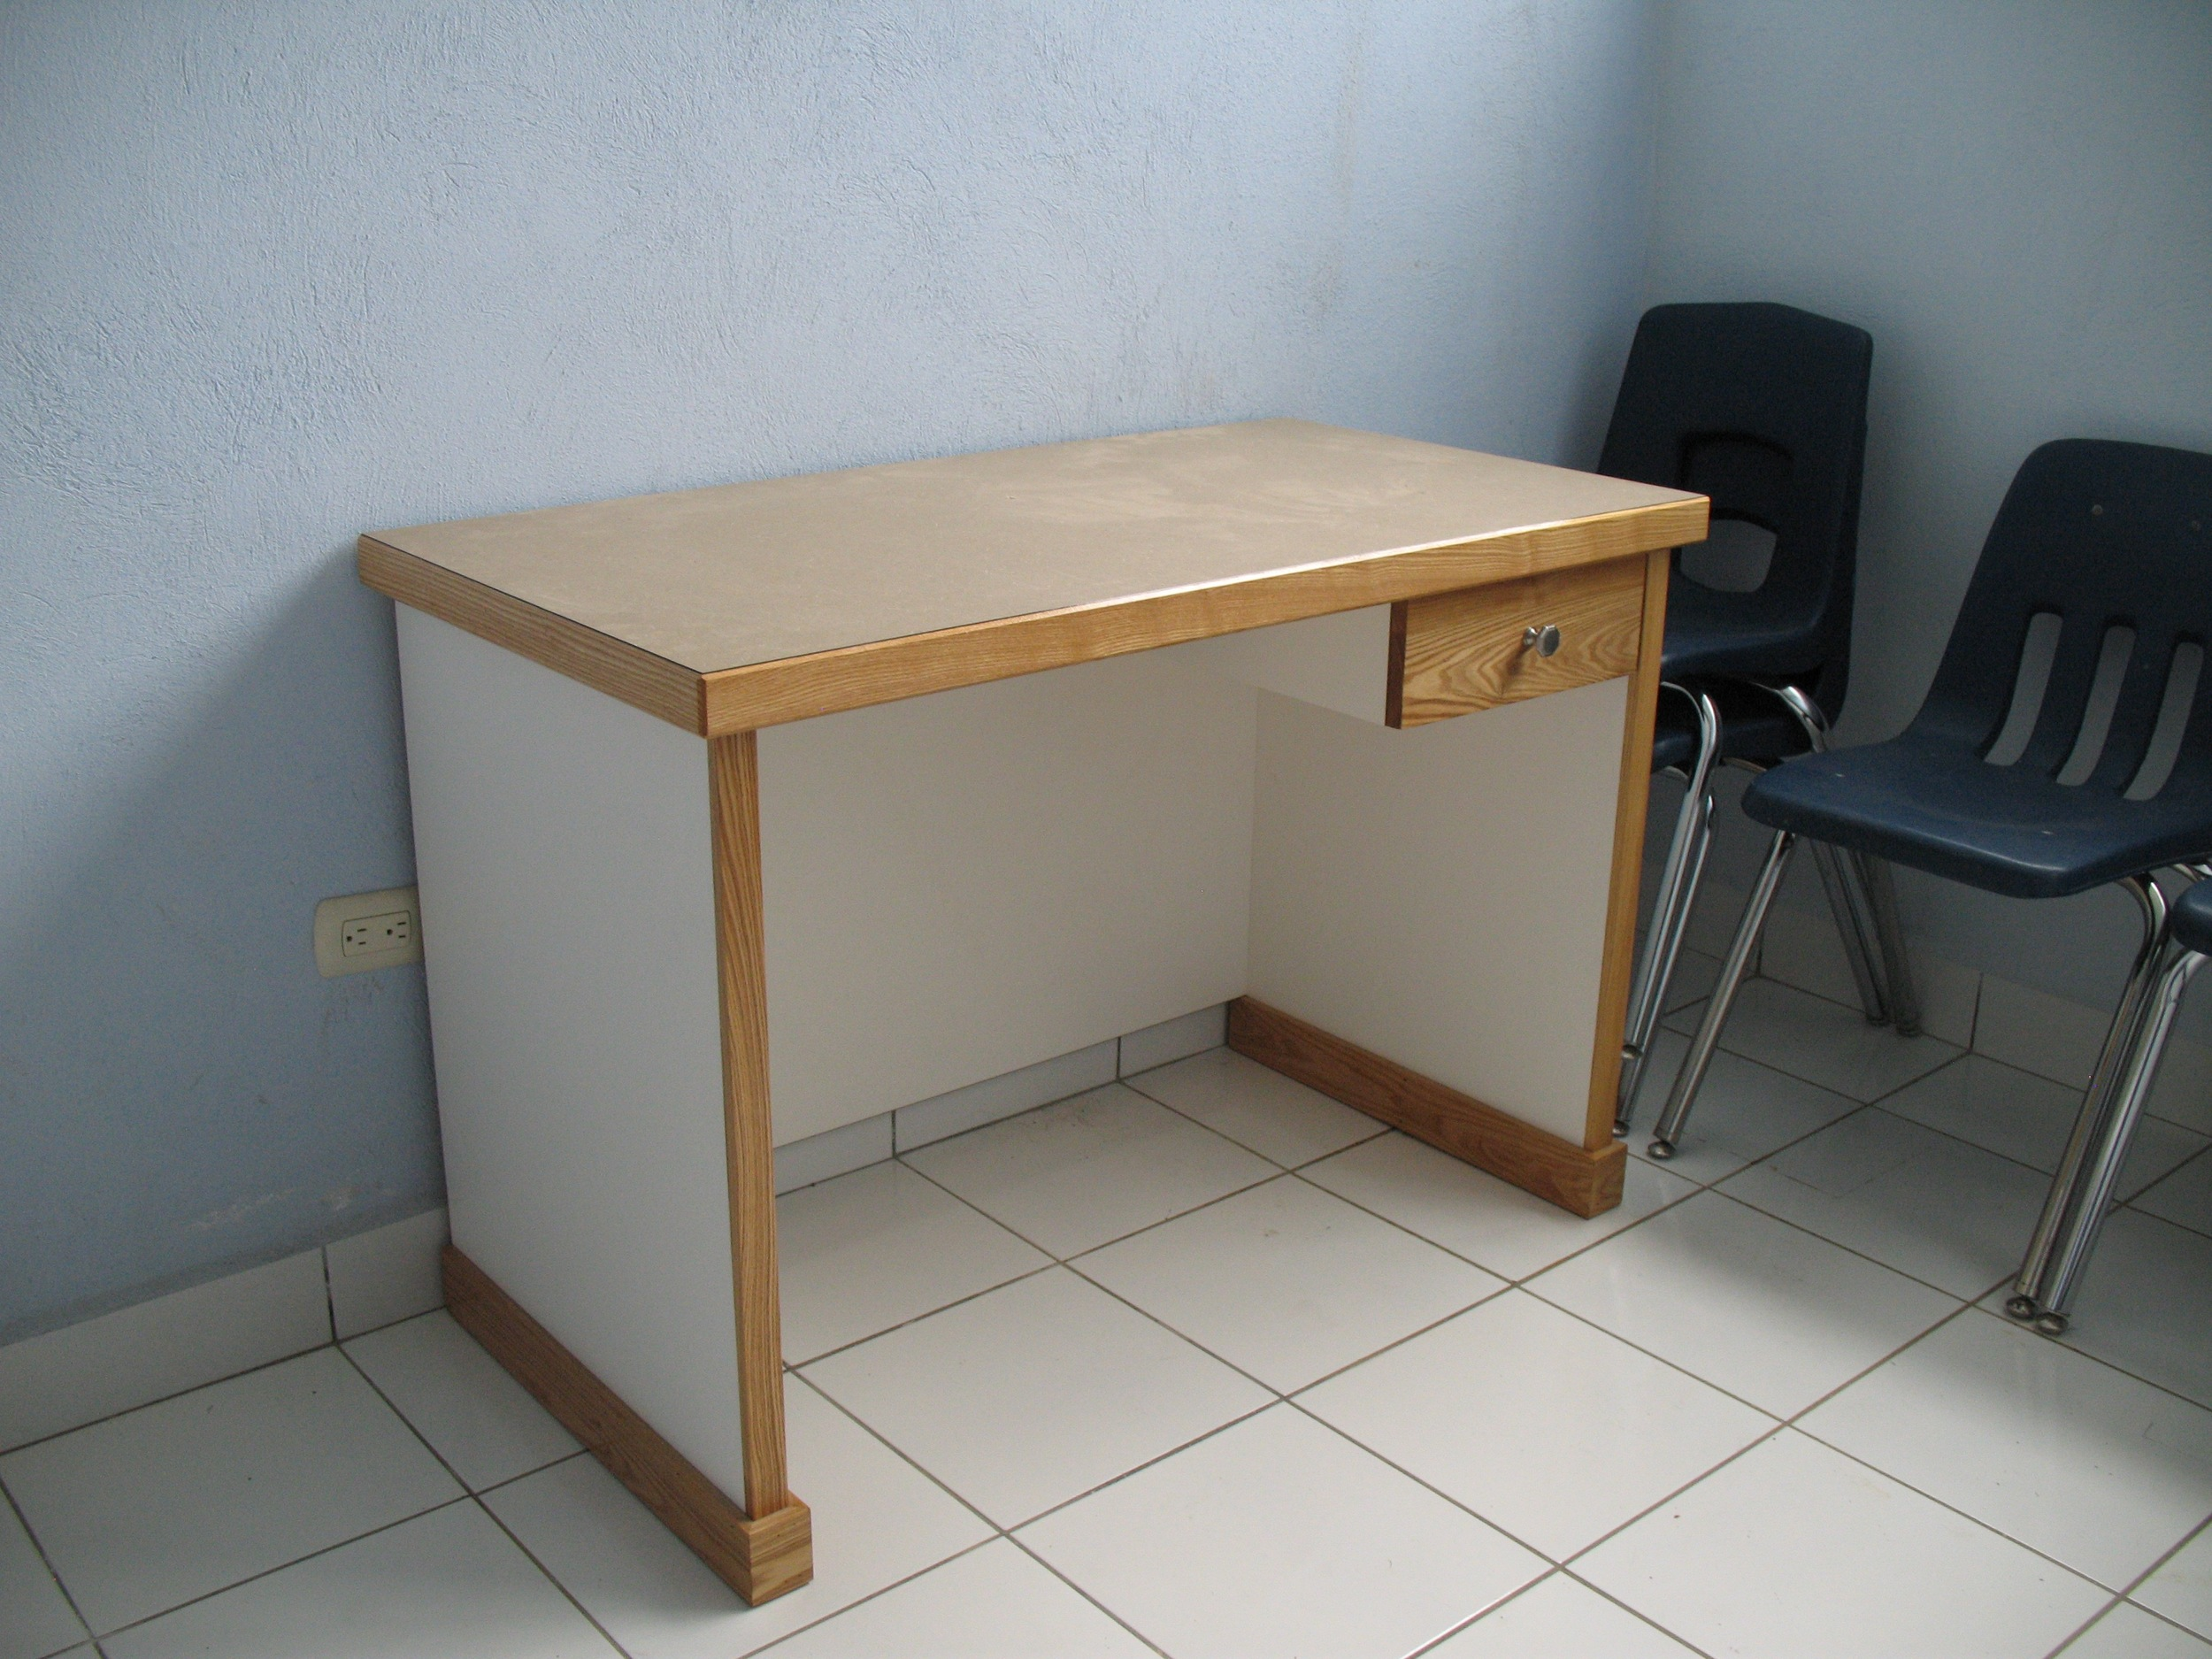 Desks in the examination rooms